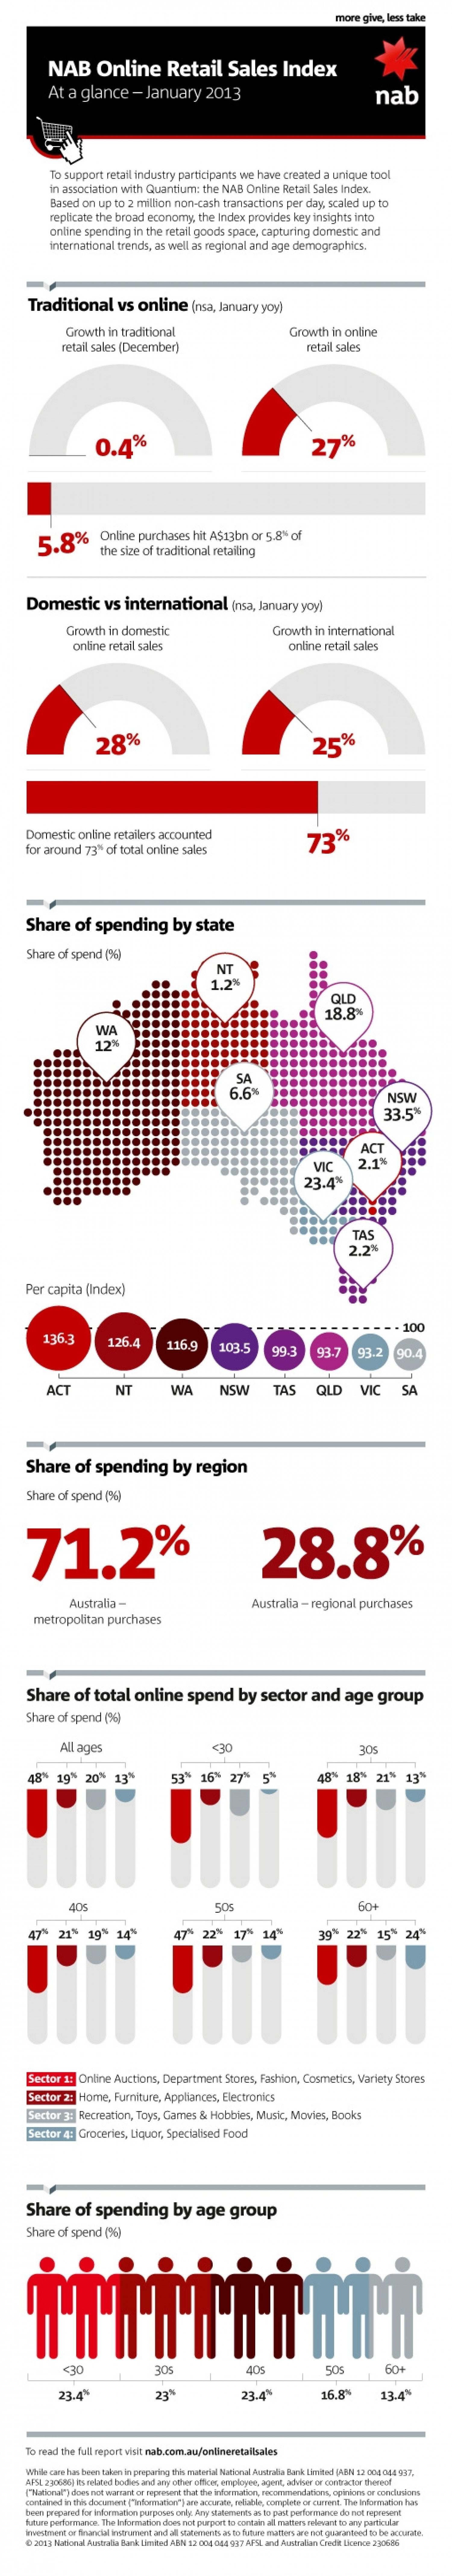 NAB Online Retail Sales Index - January 2013 Infographic